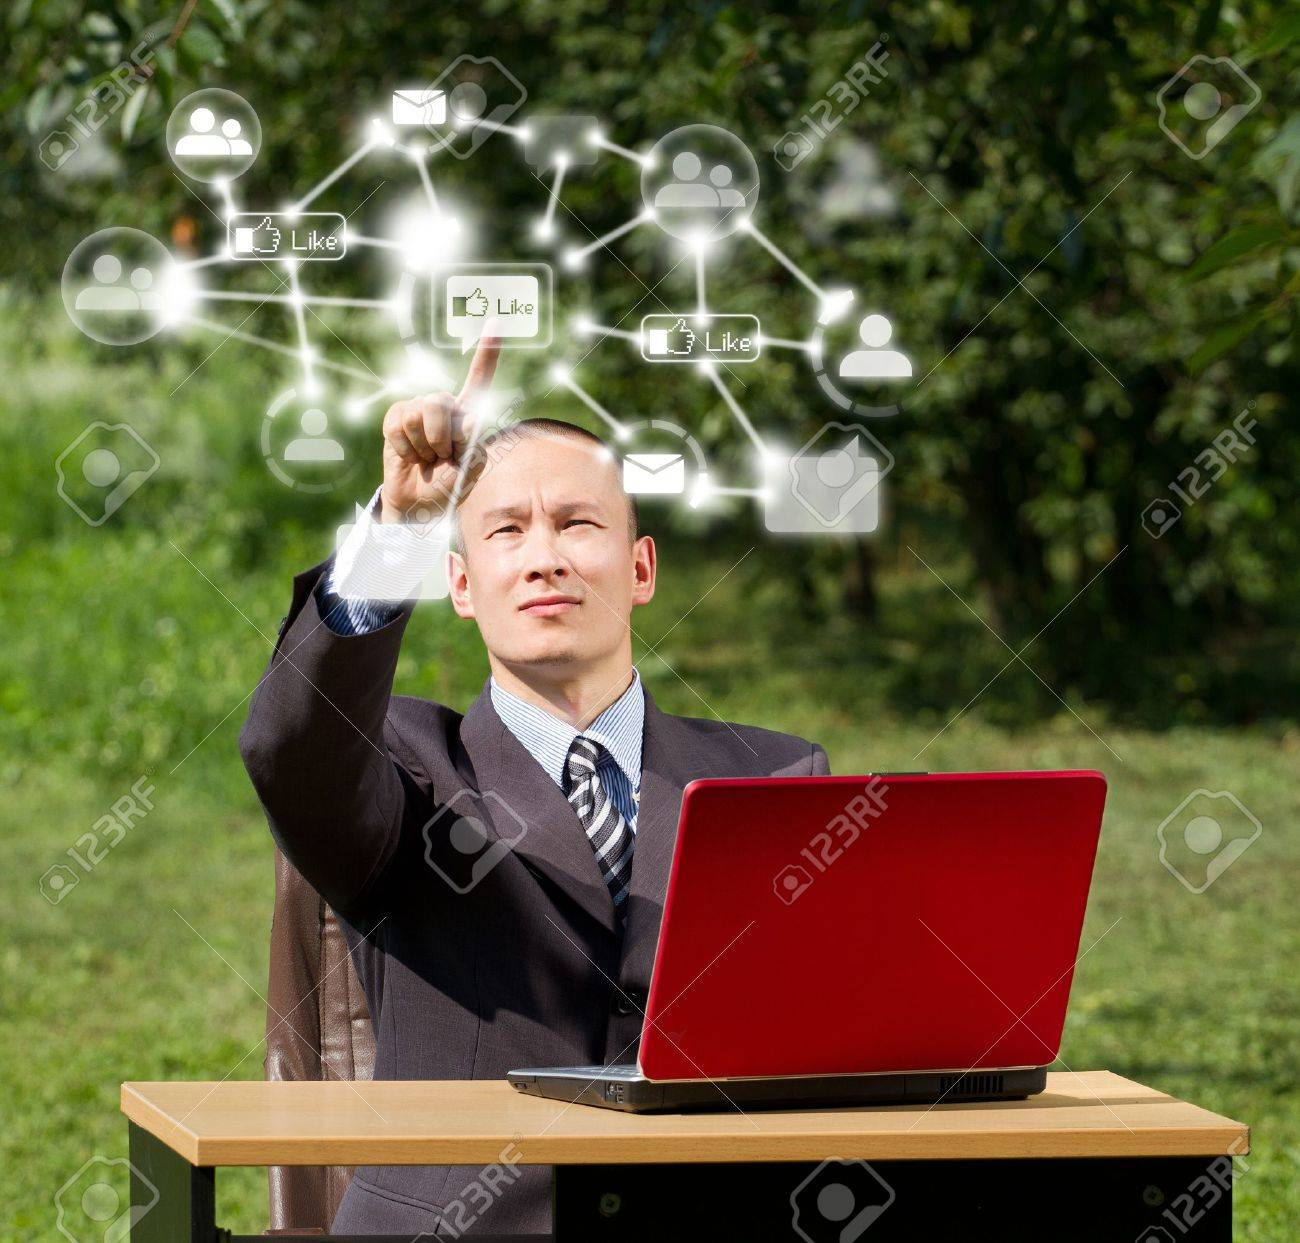 Man with red laptop in social networks outdoors, pushs the button Stock Photo - 12547518